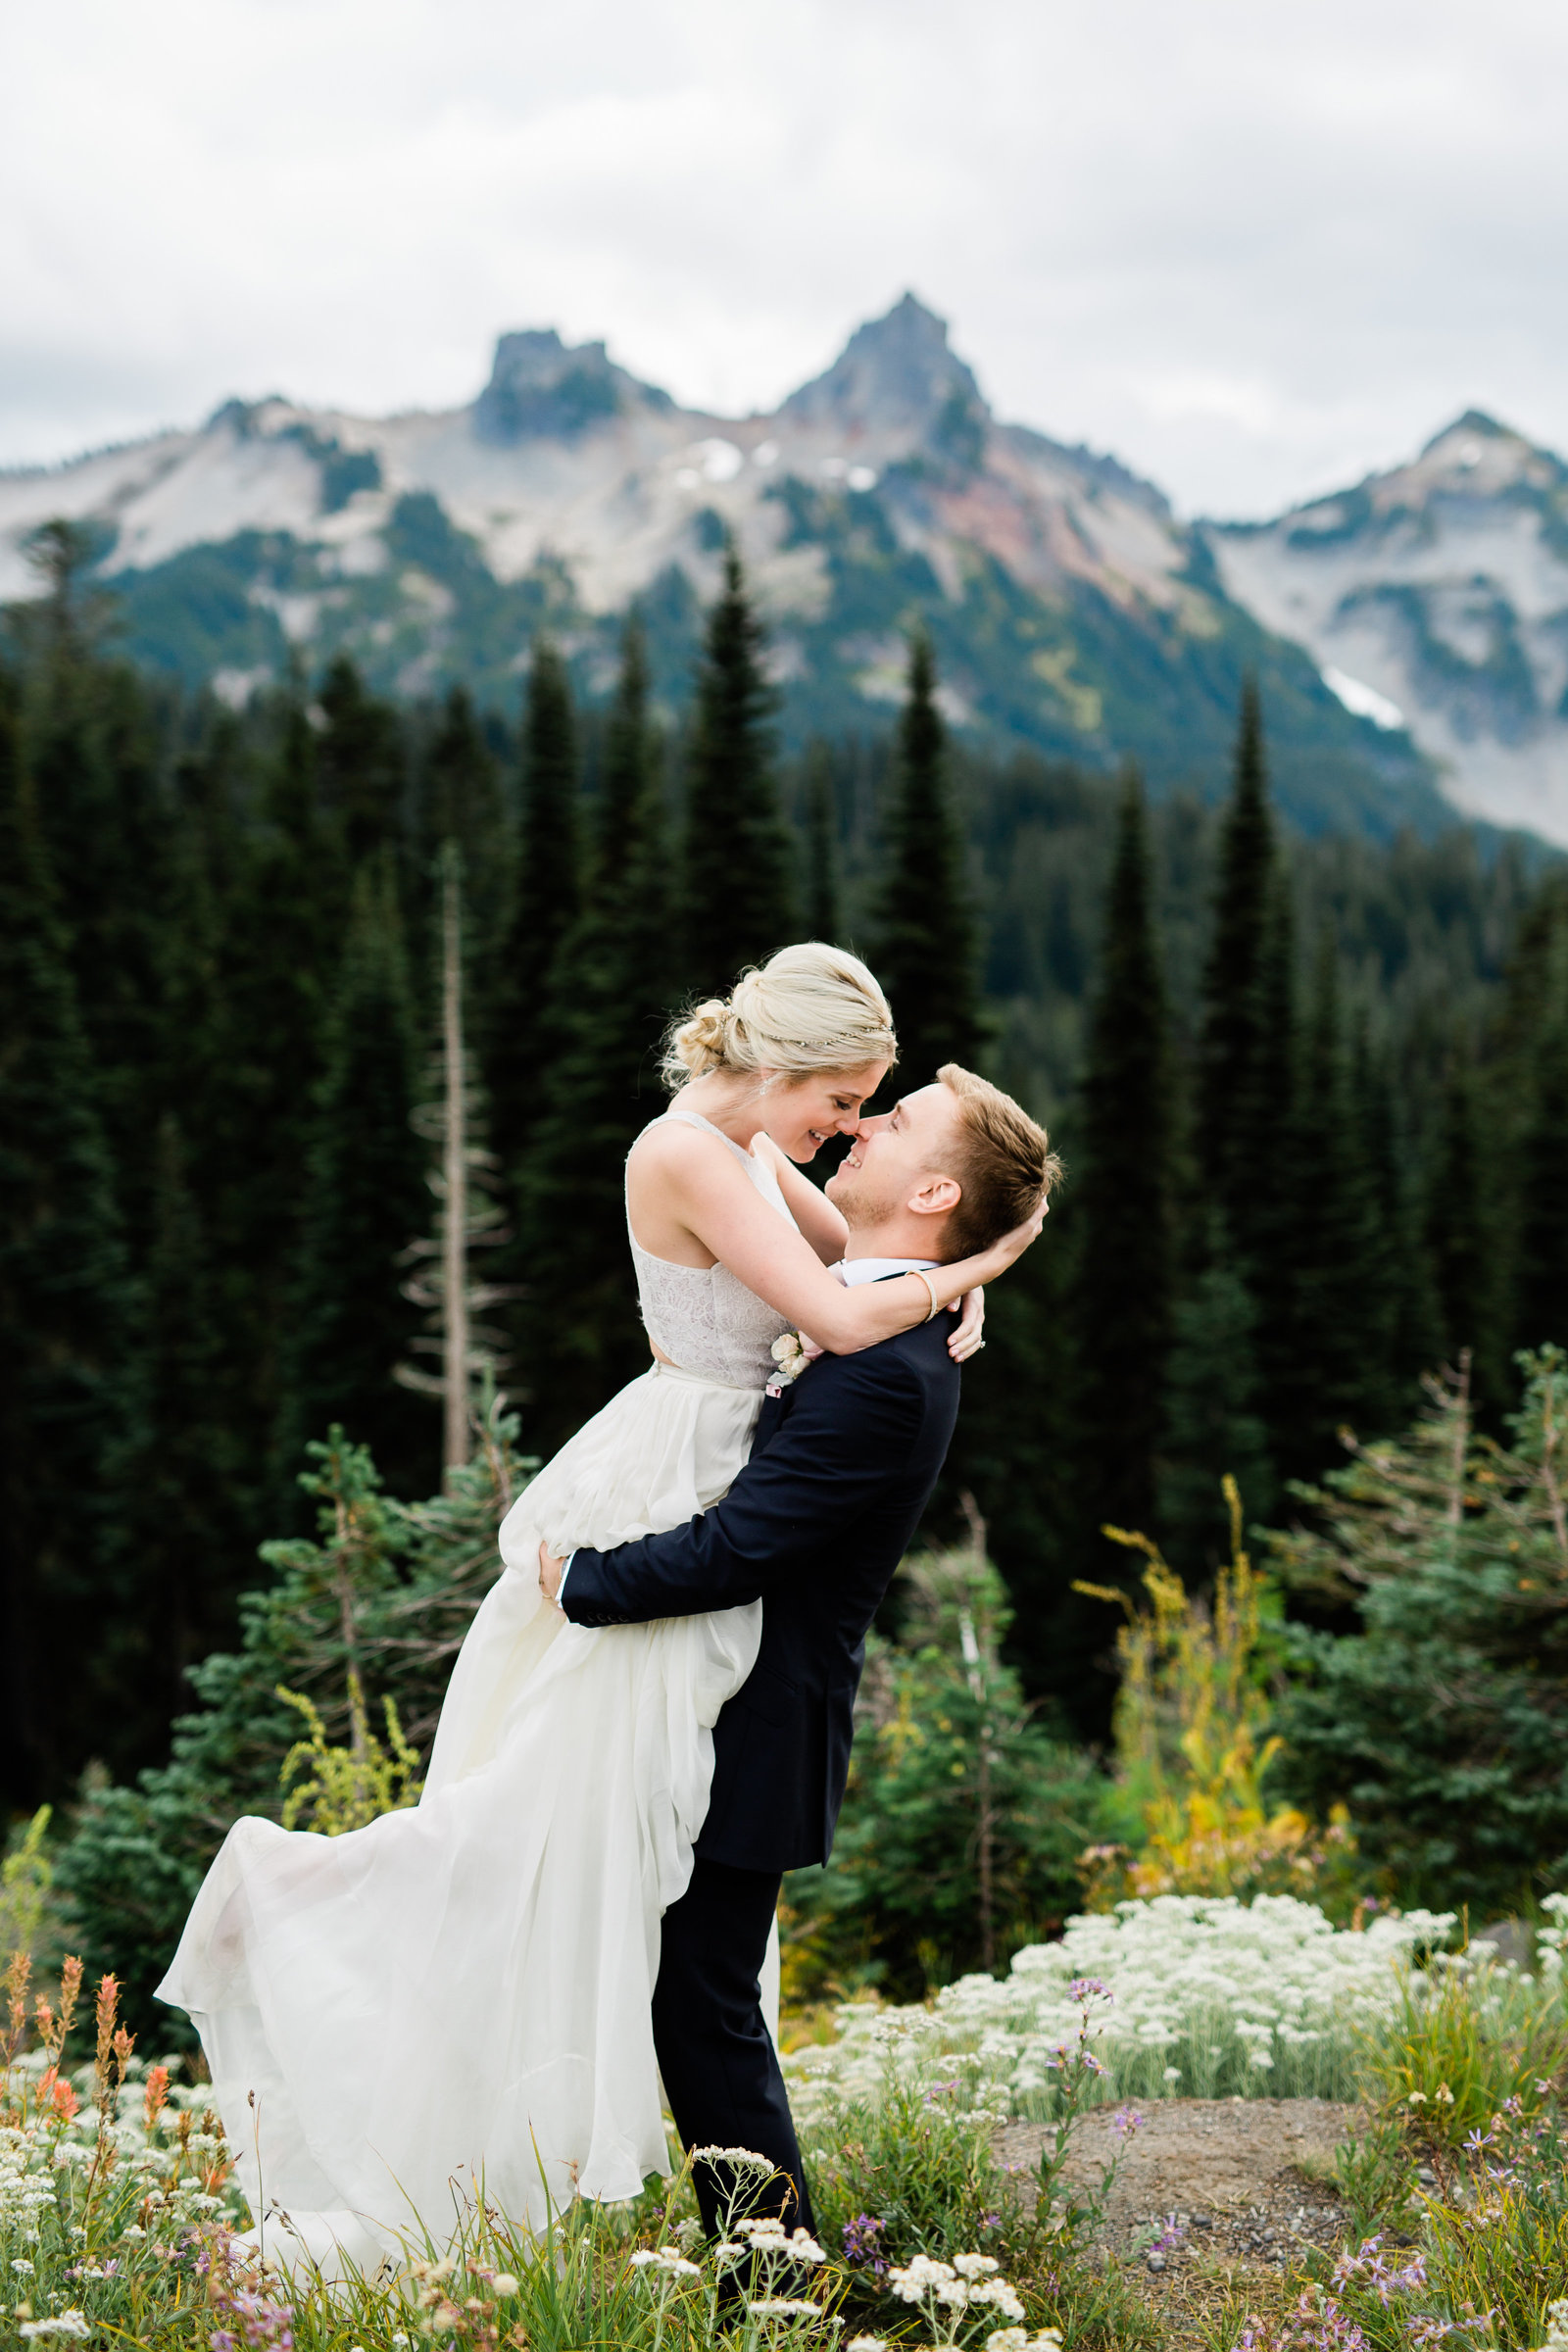 mount-rainier-national-park-elopement-cameron-zegers-photographer-seattle-304